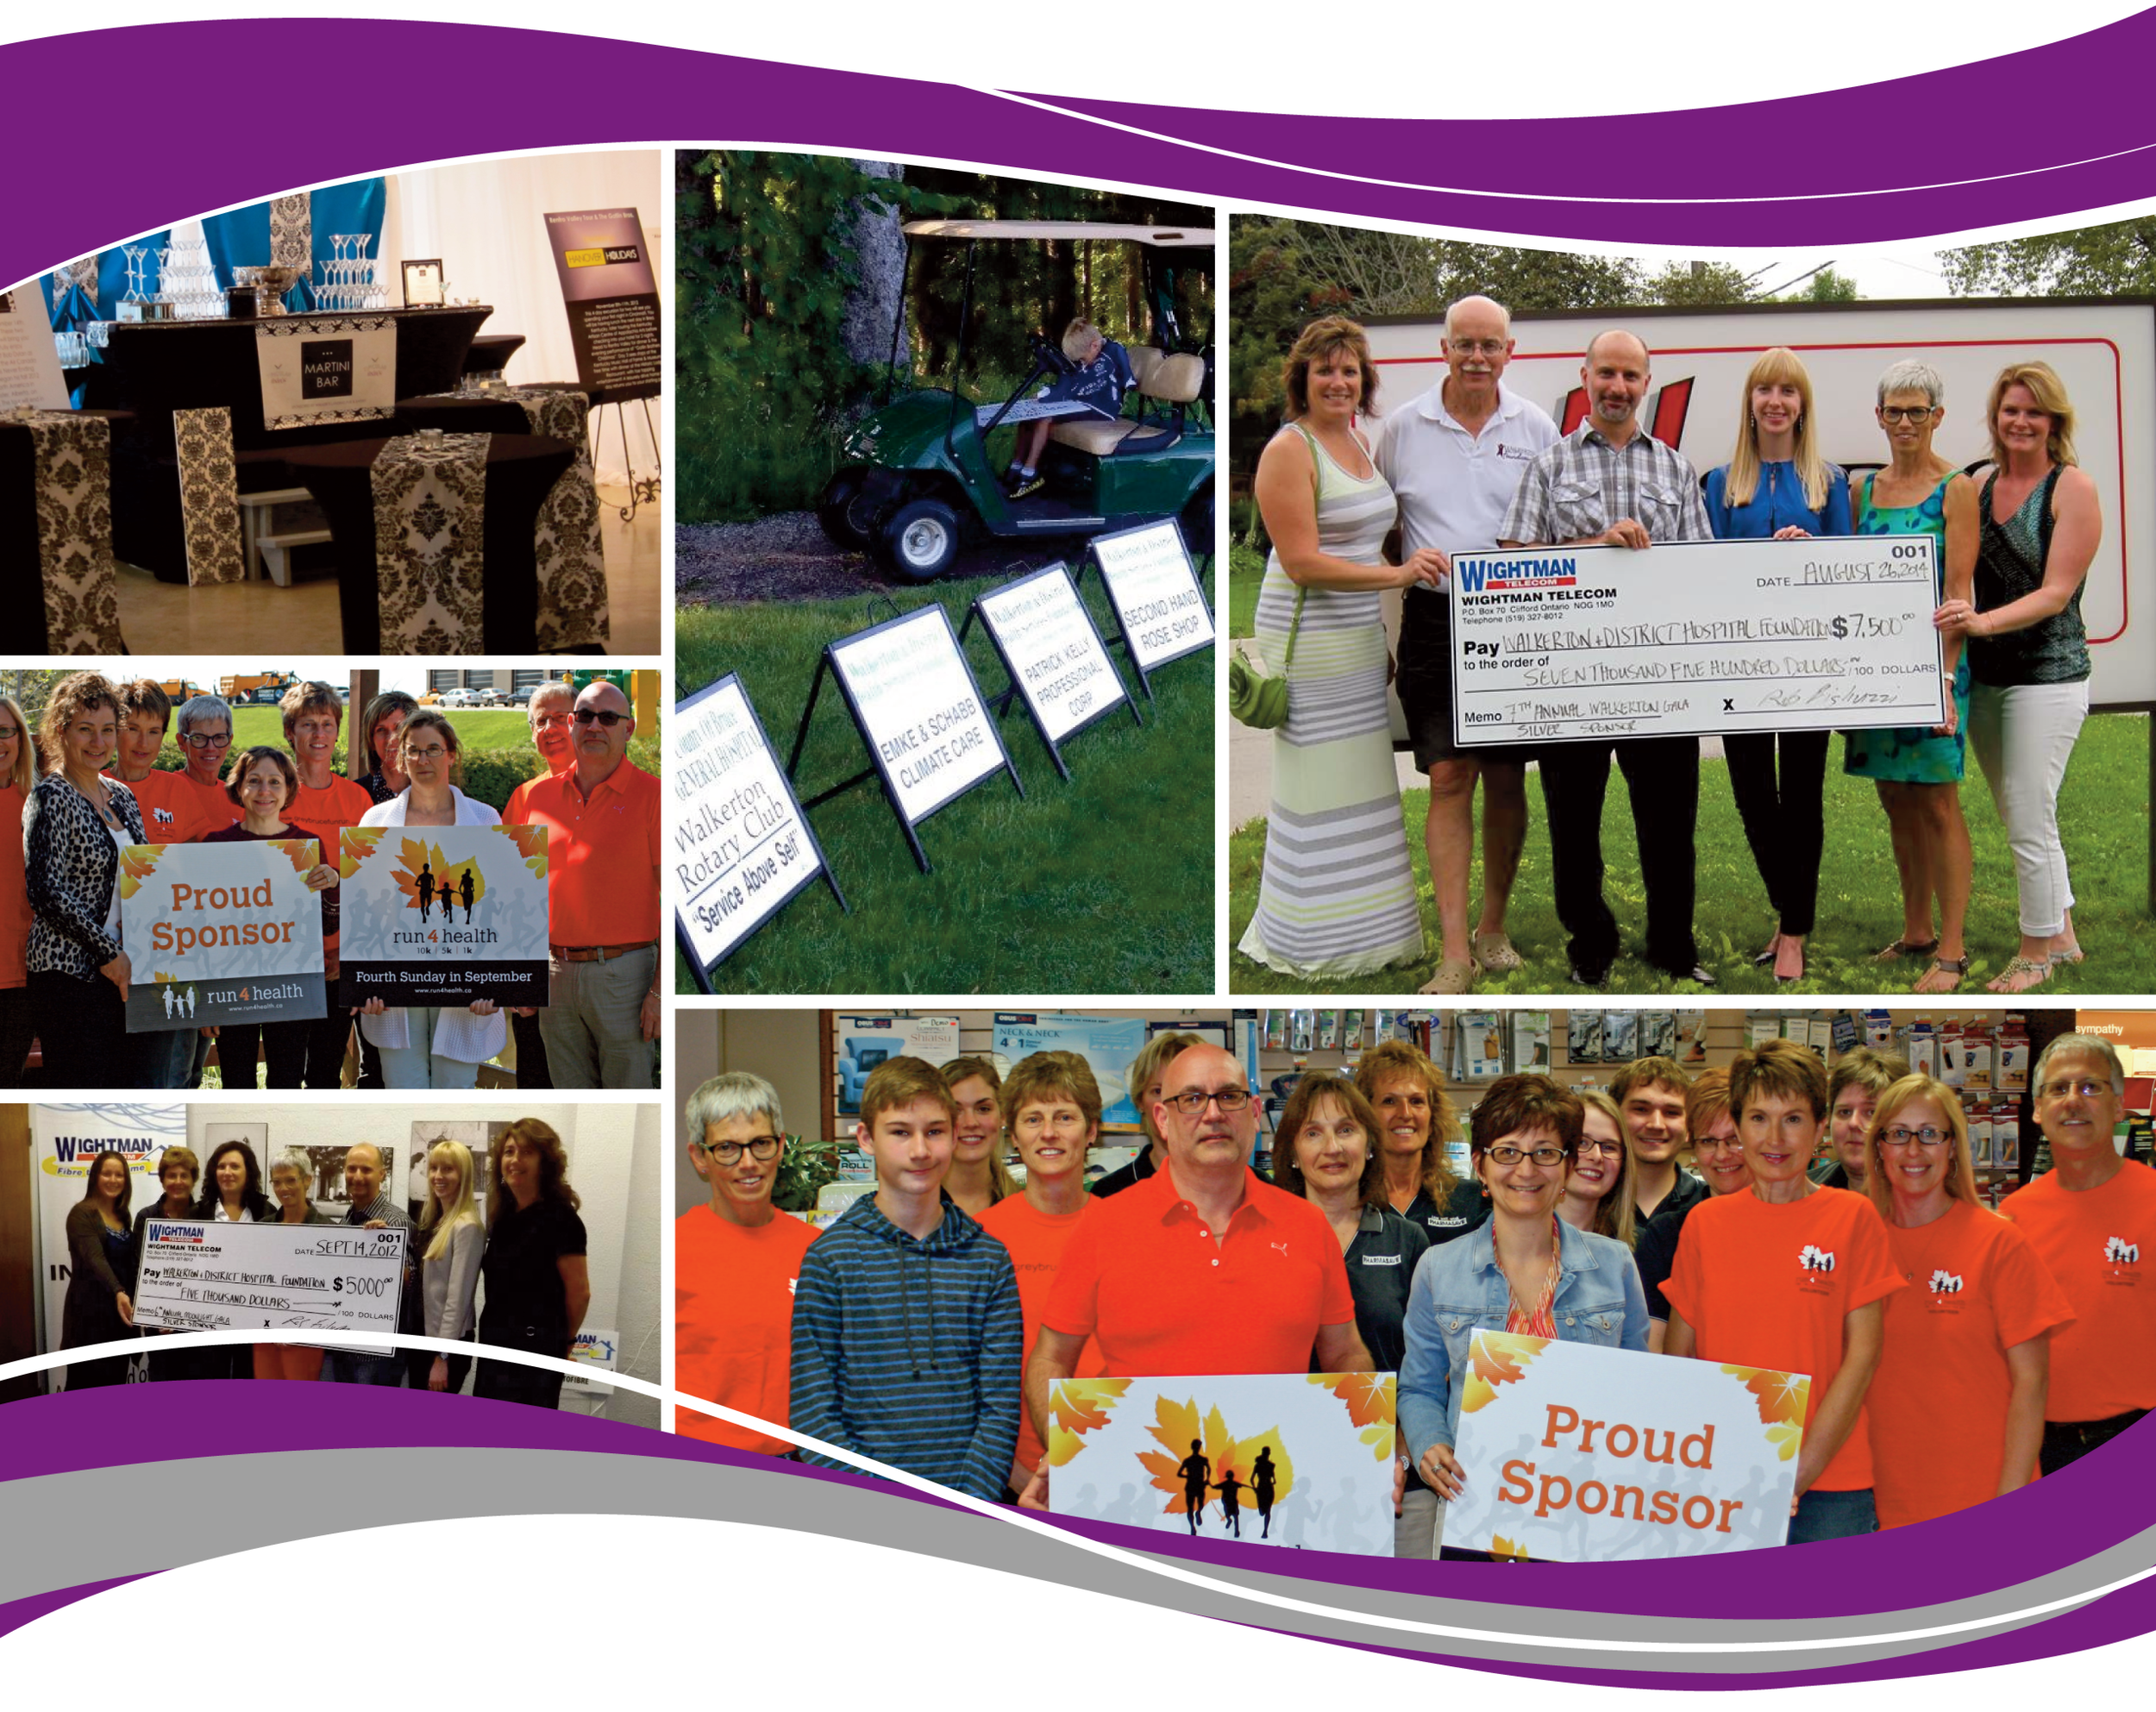 WDHF_SPONSOR AN EVENT COLLAGE.png